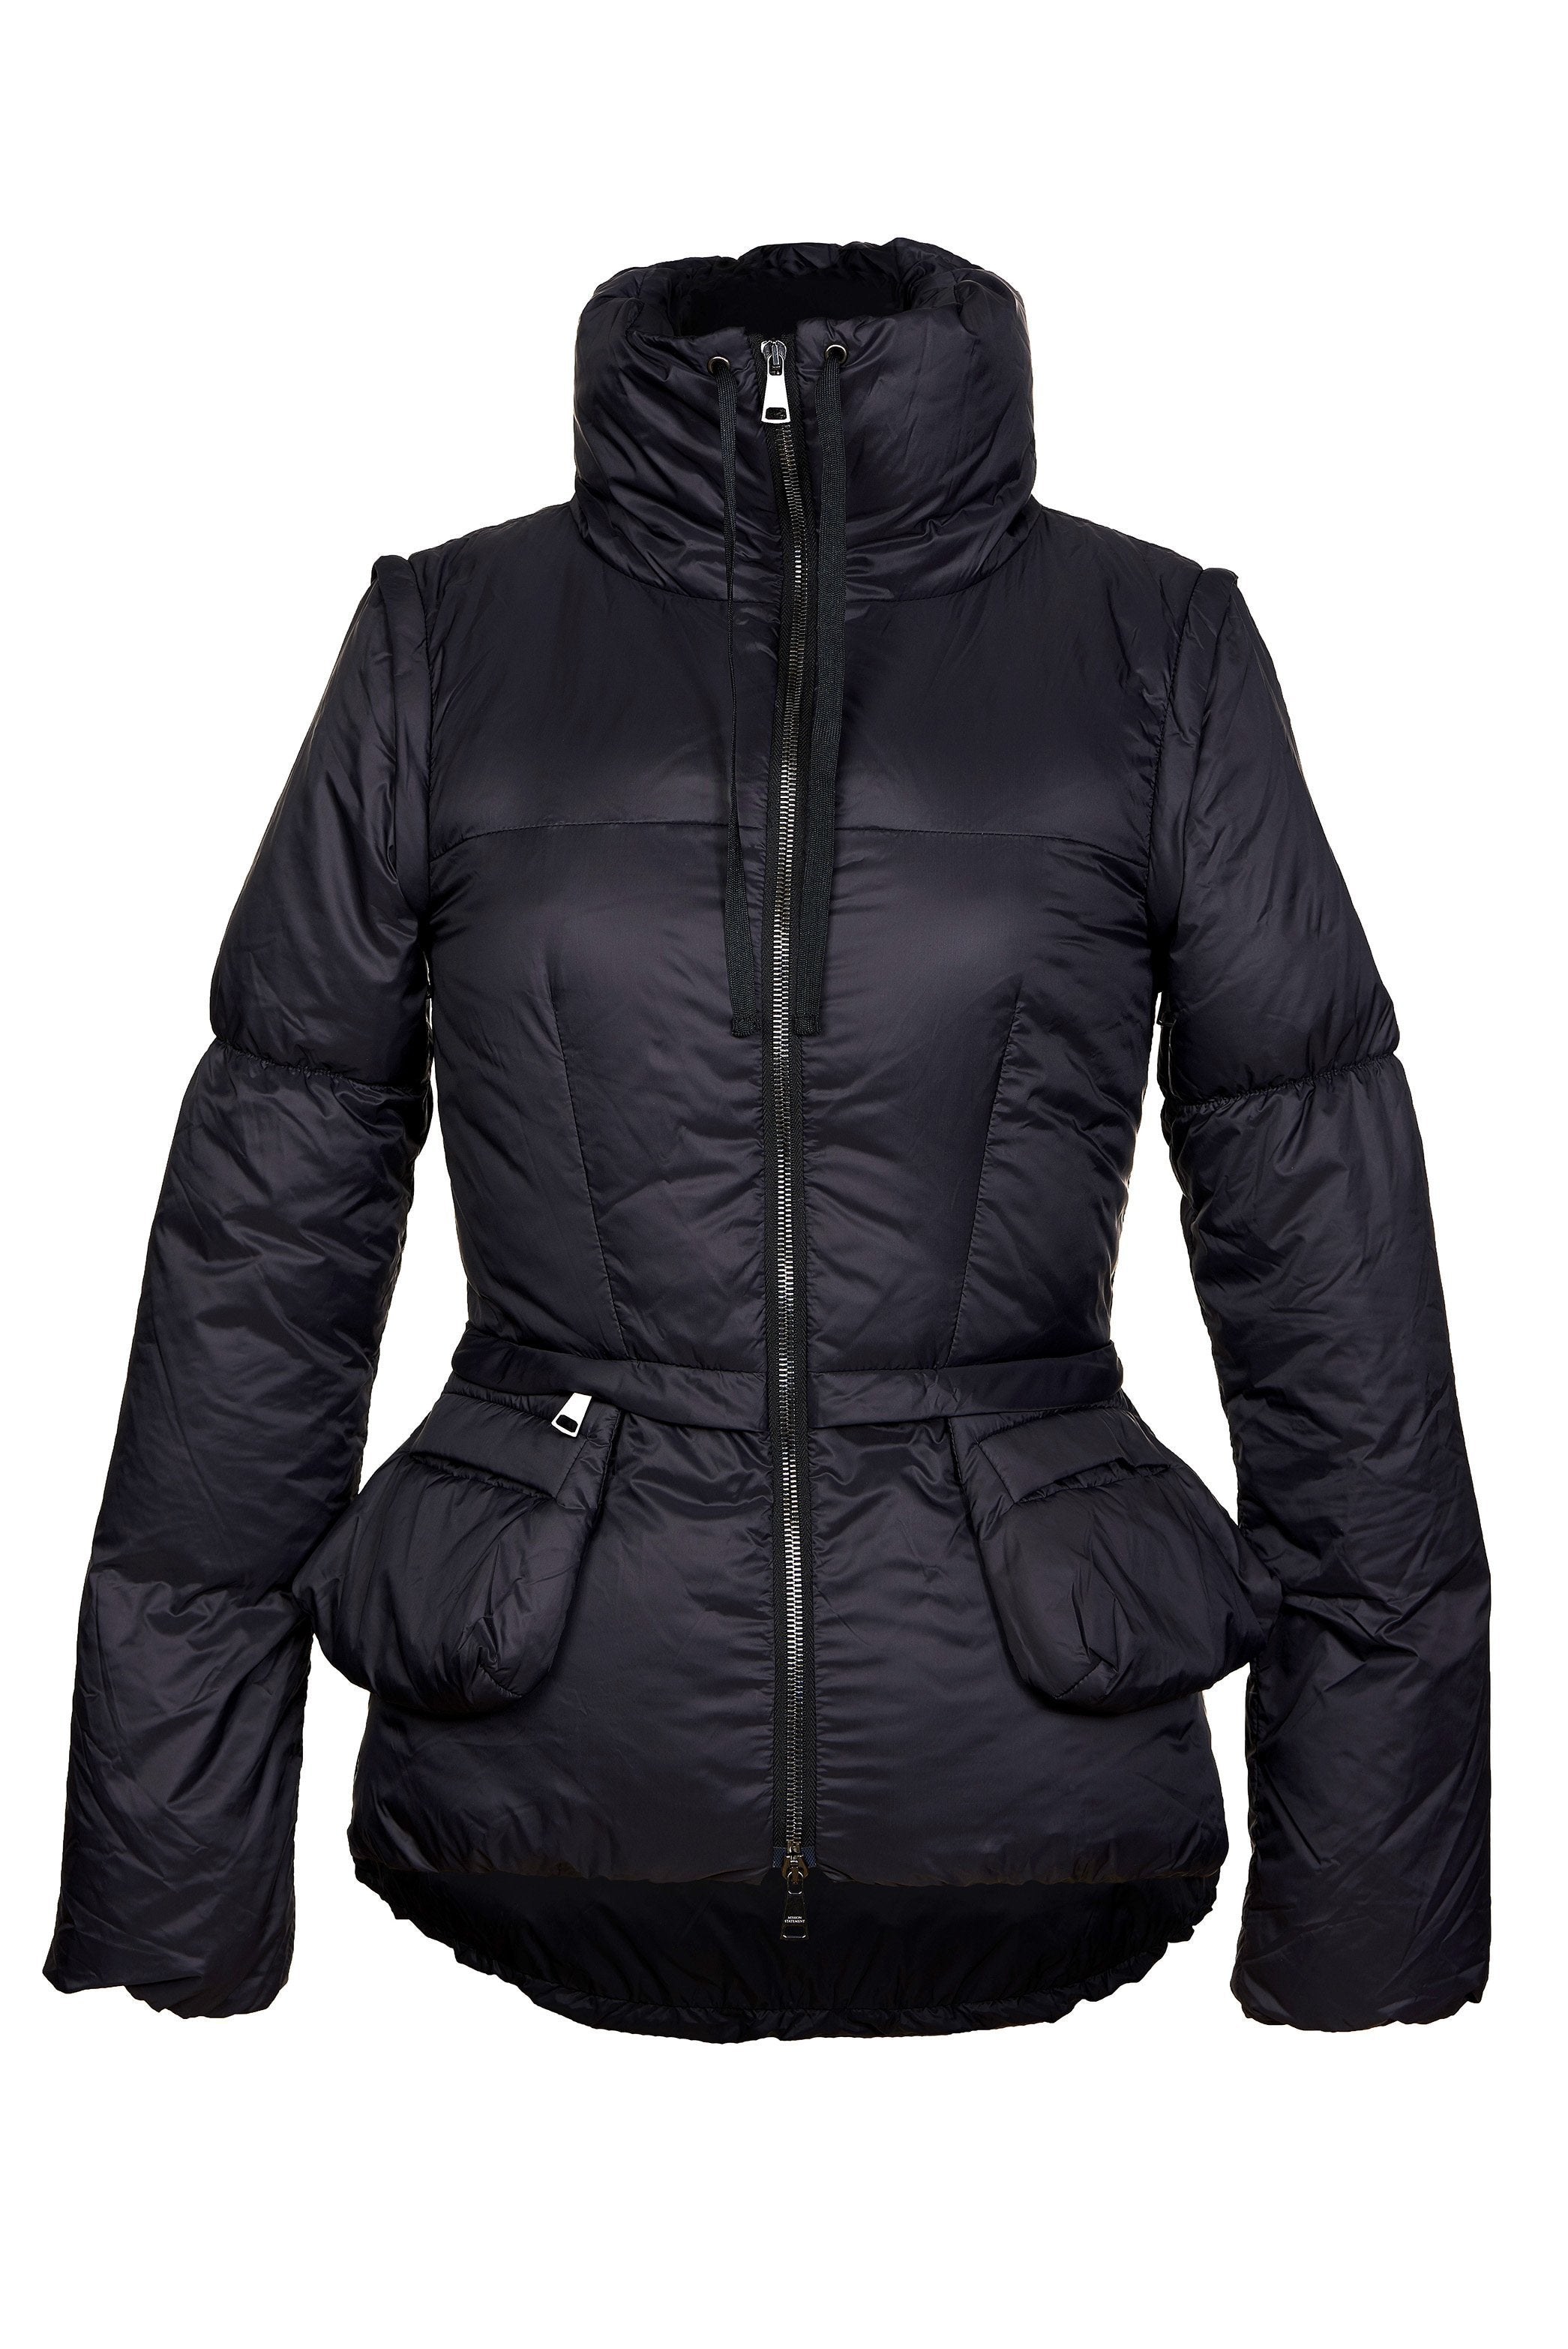 A sleek puffer jacket pictures